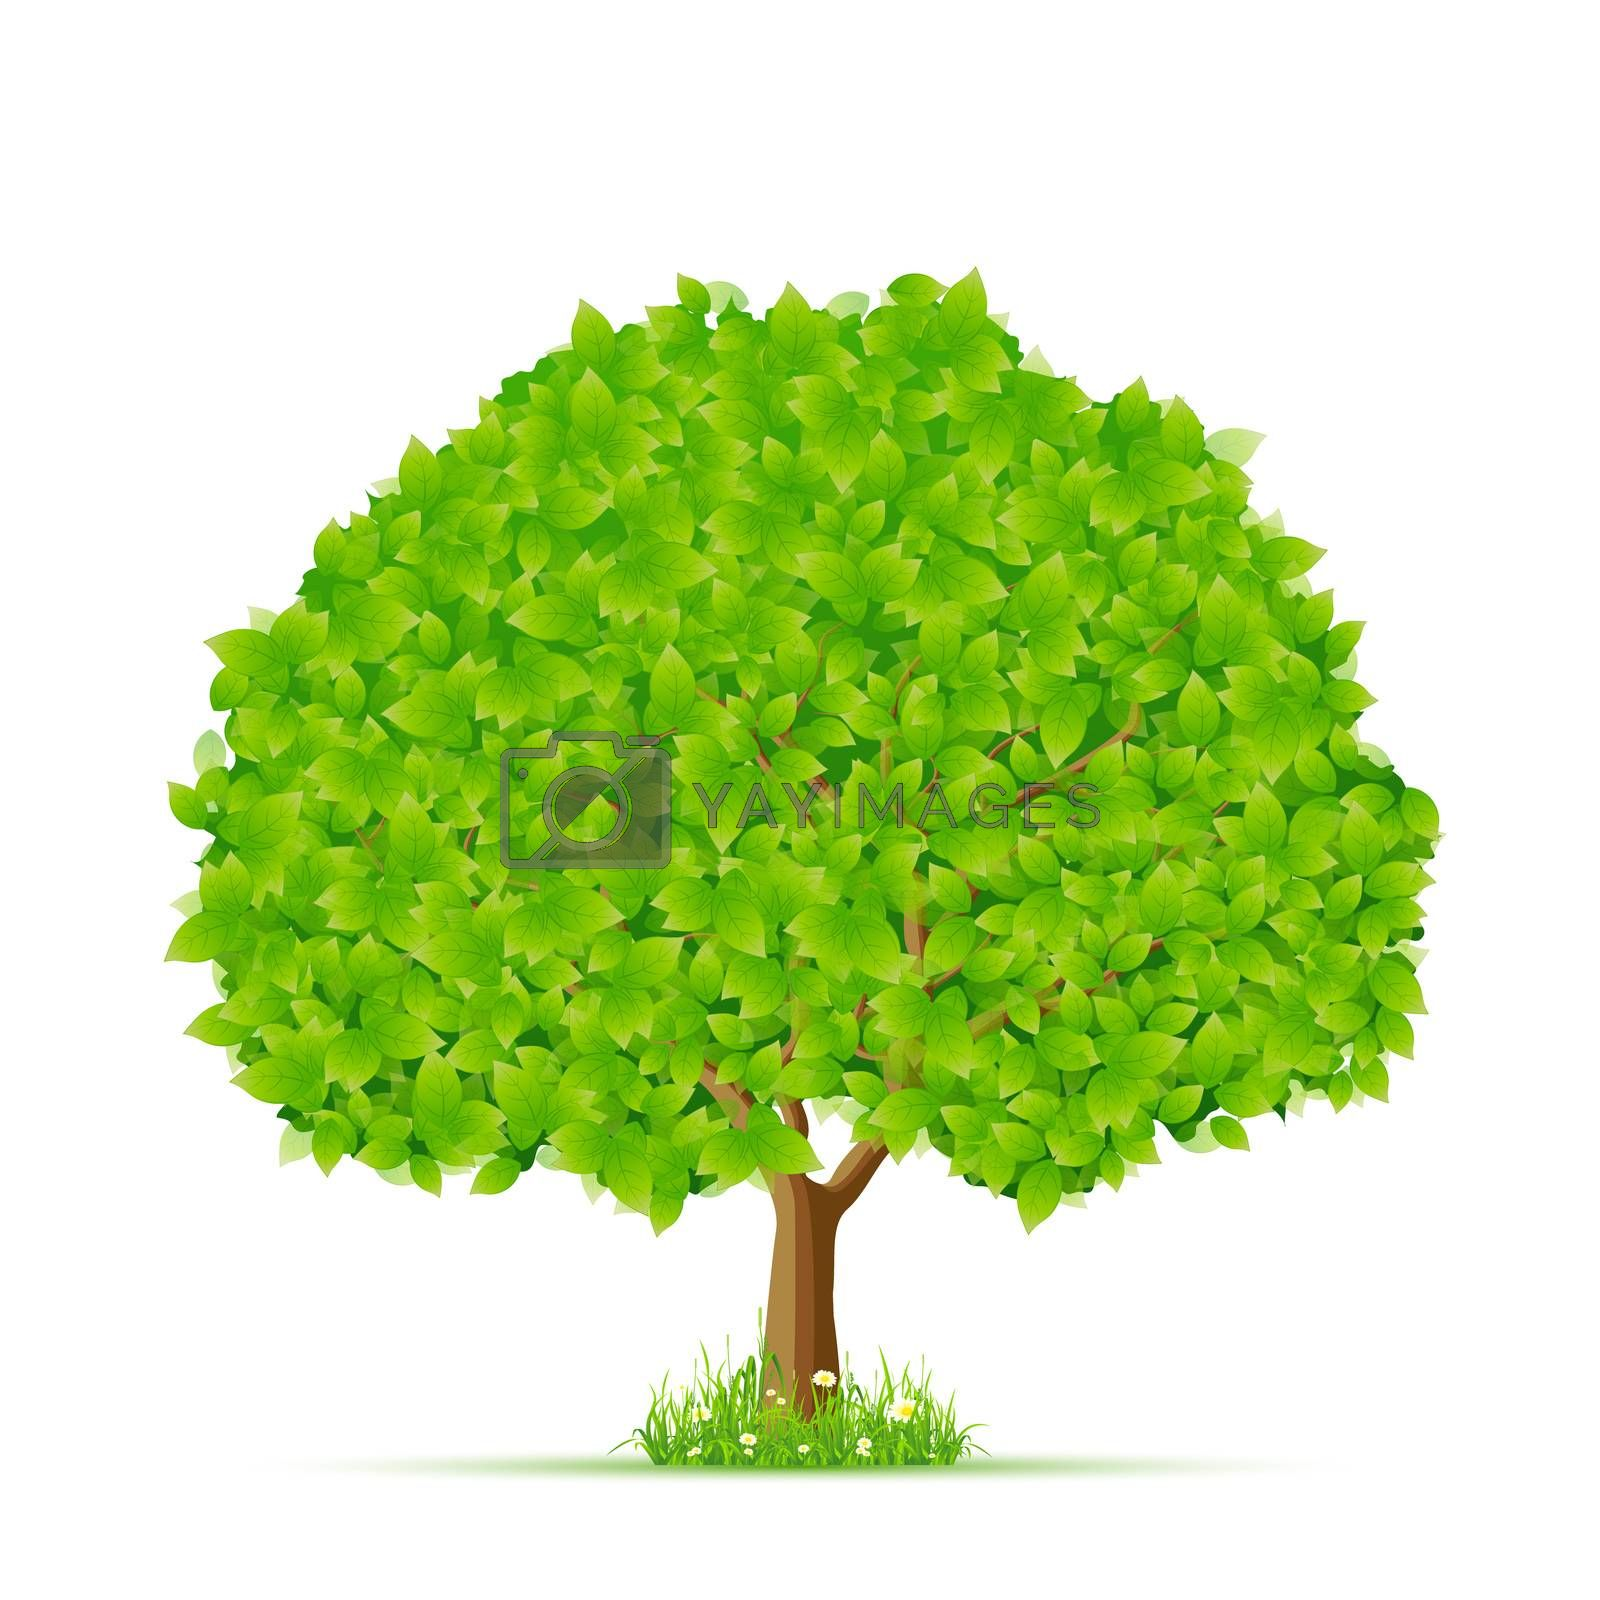 Isolated Green Tree with Grass and Flowers by WaD